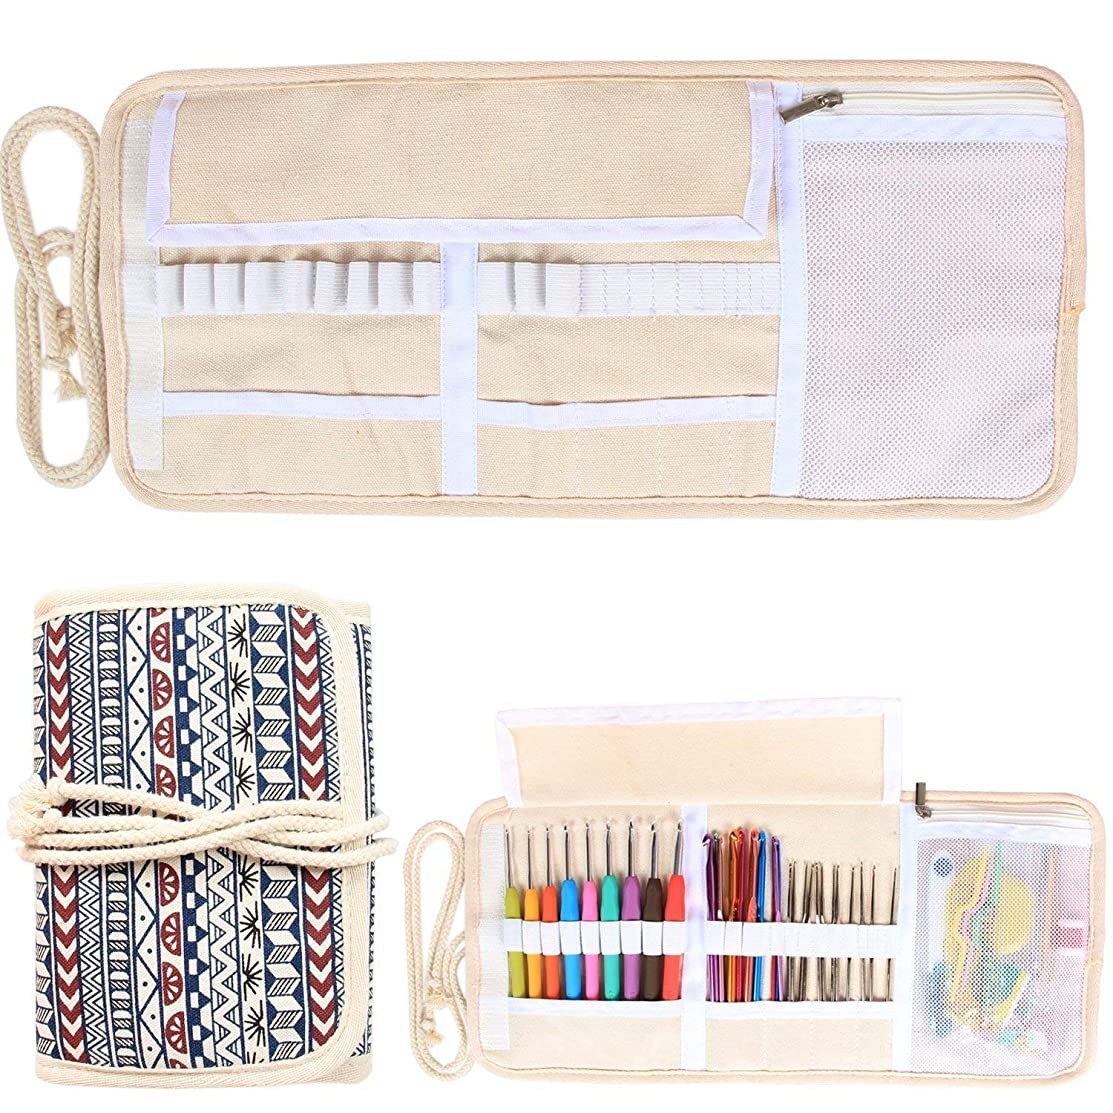 Damero New Canvas Crochet Hooks Wrap Knitting/Crochet Accessories Pouch Craft Tools Organizer Bag, Bohemian-(Not Accessories Included)